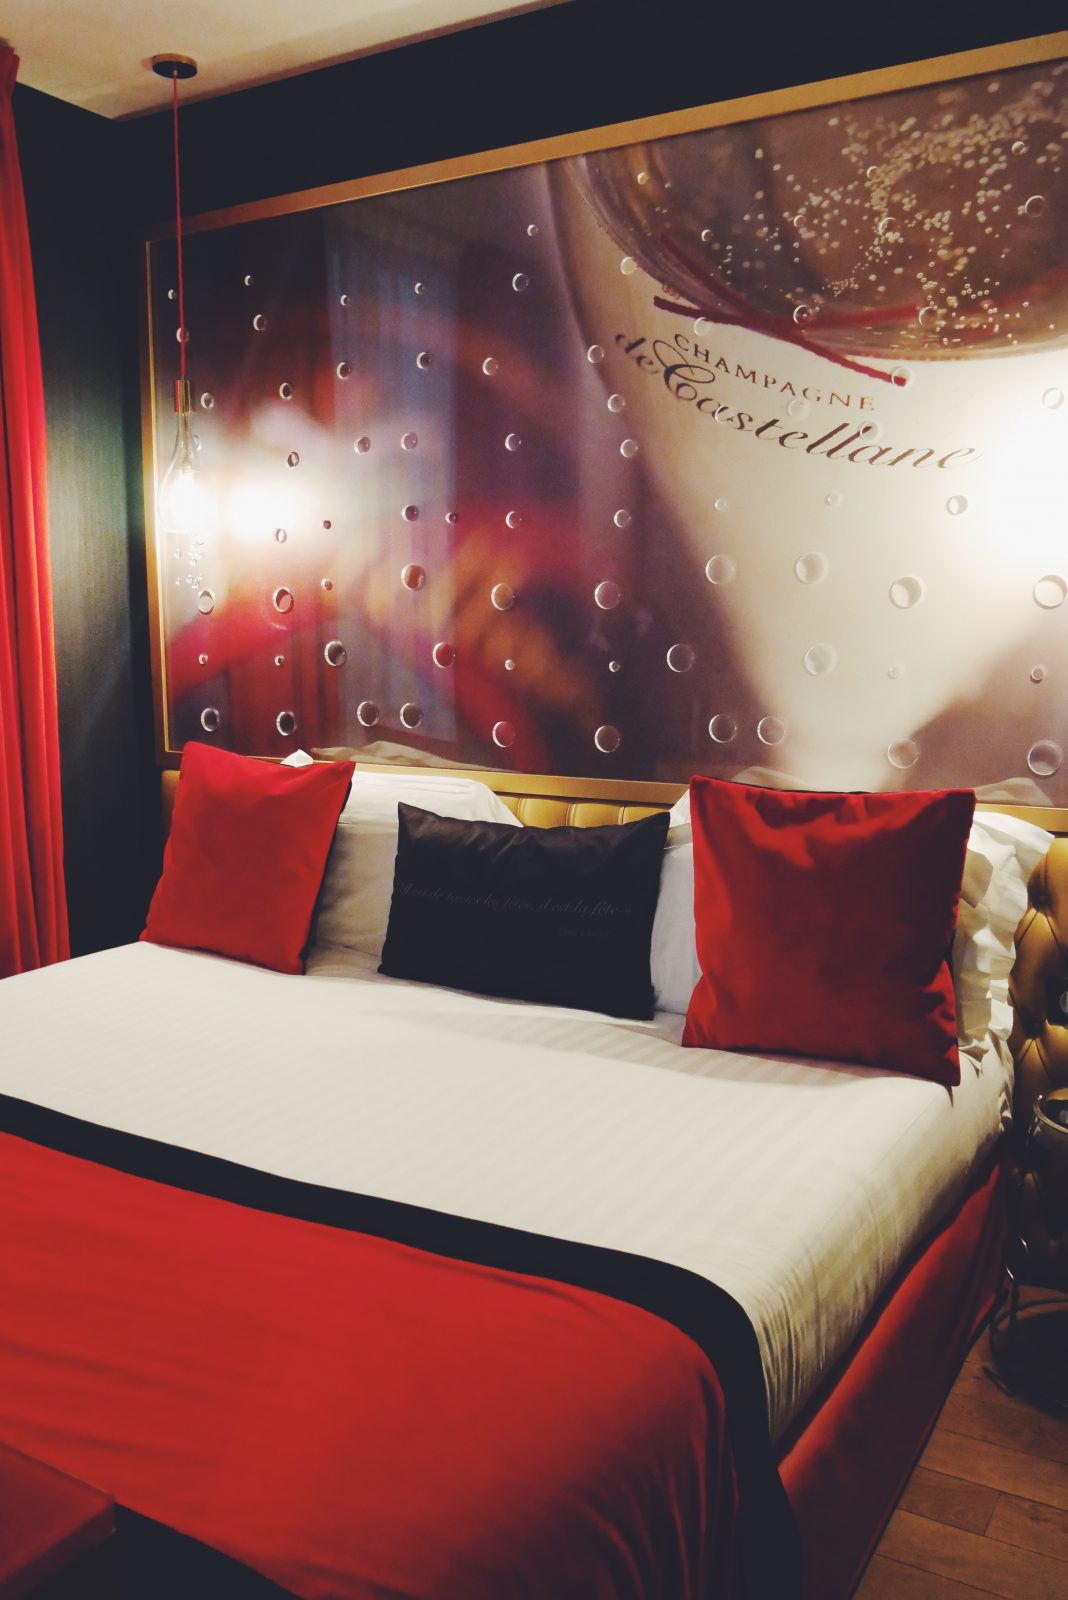 Suite-Champagne-de-Castellane-Hôtel-Les-Bulles-de-Paris-5e-quartier-latin-myroomin-photo-usofparis-blog